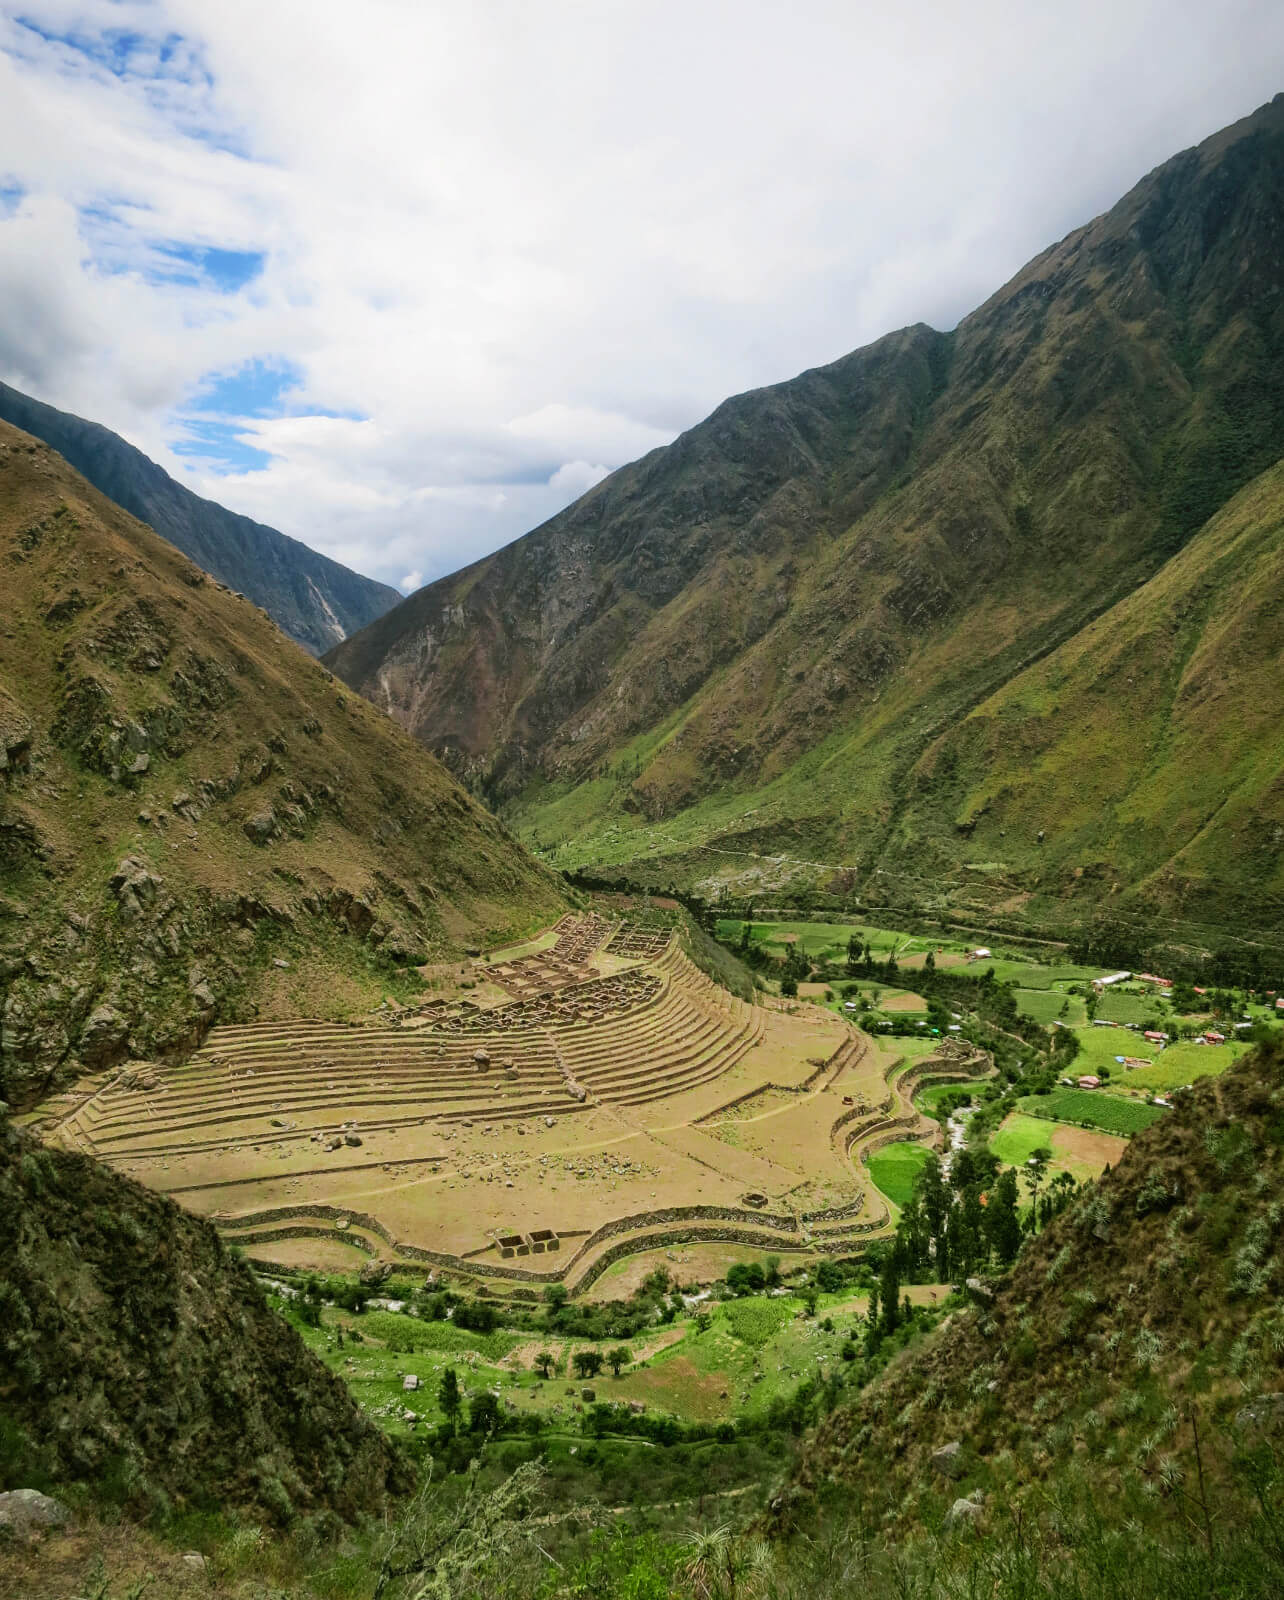 Along the Inca Trail to Machu Picchu there are many fascinating ancient ruins. Our guide from Alpaca Expeditions gave us a detailed background and story behind each of them. We love that there are 4 days of learning about Incan Culture BEFORE Machu Picchu!